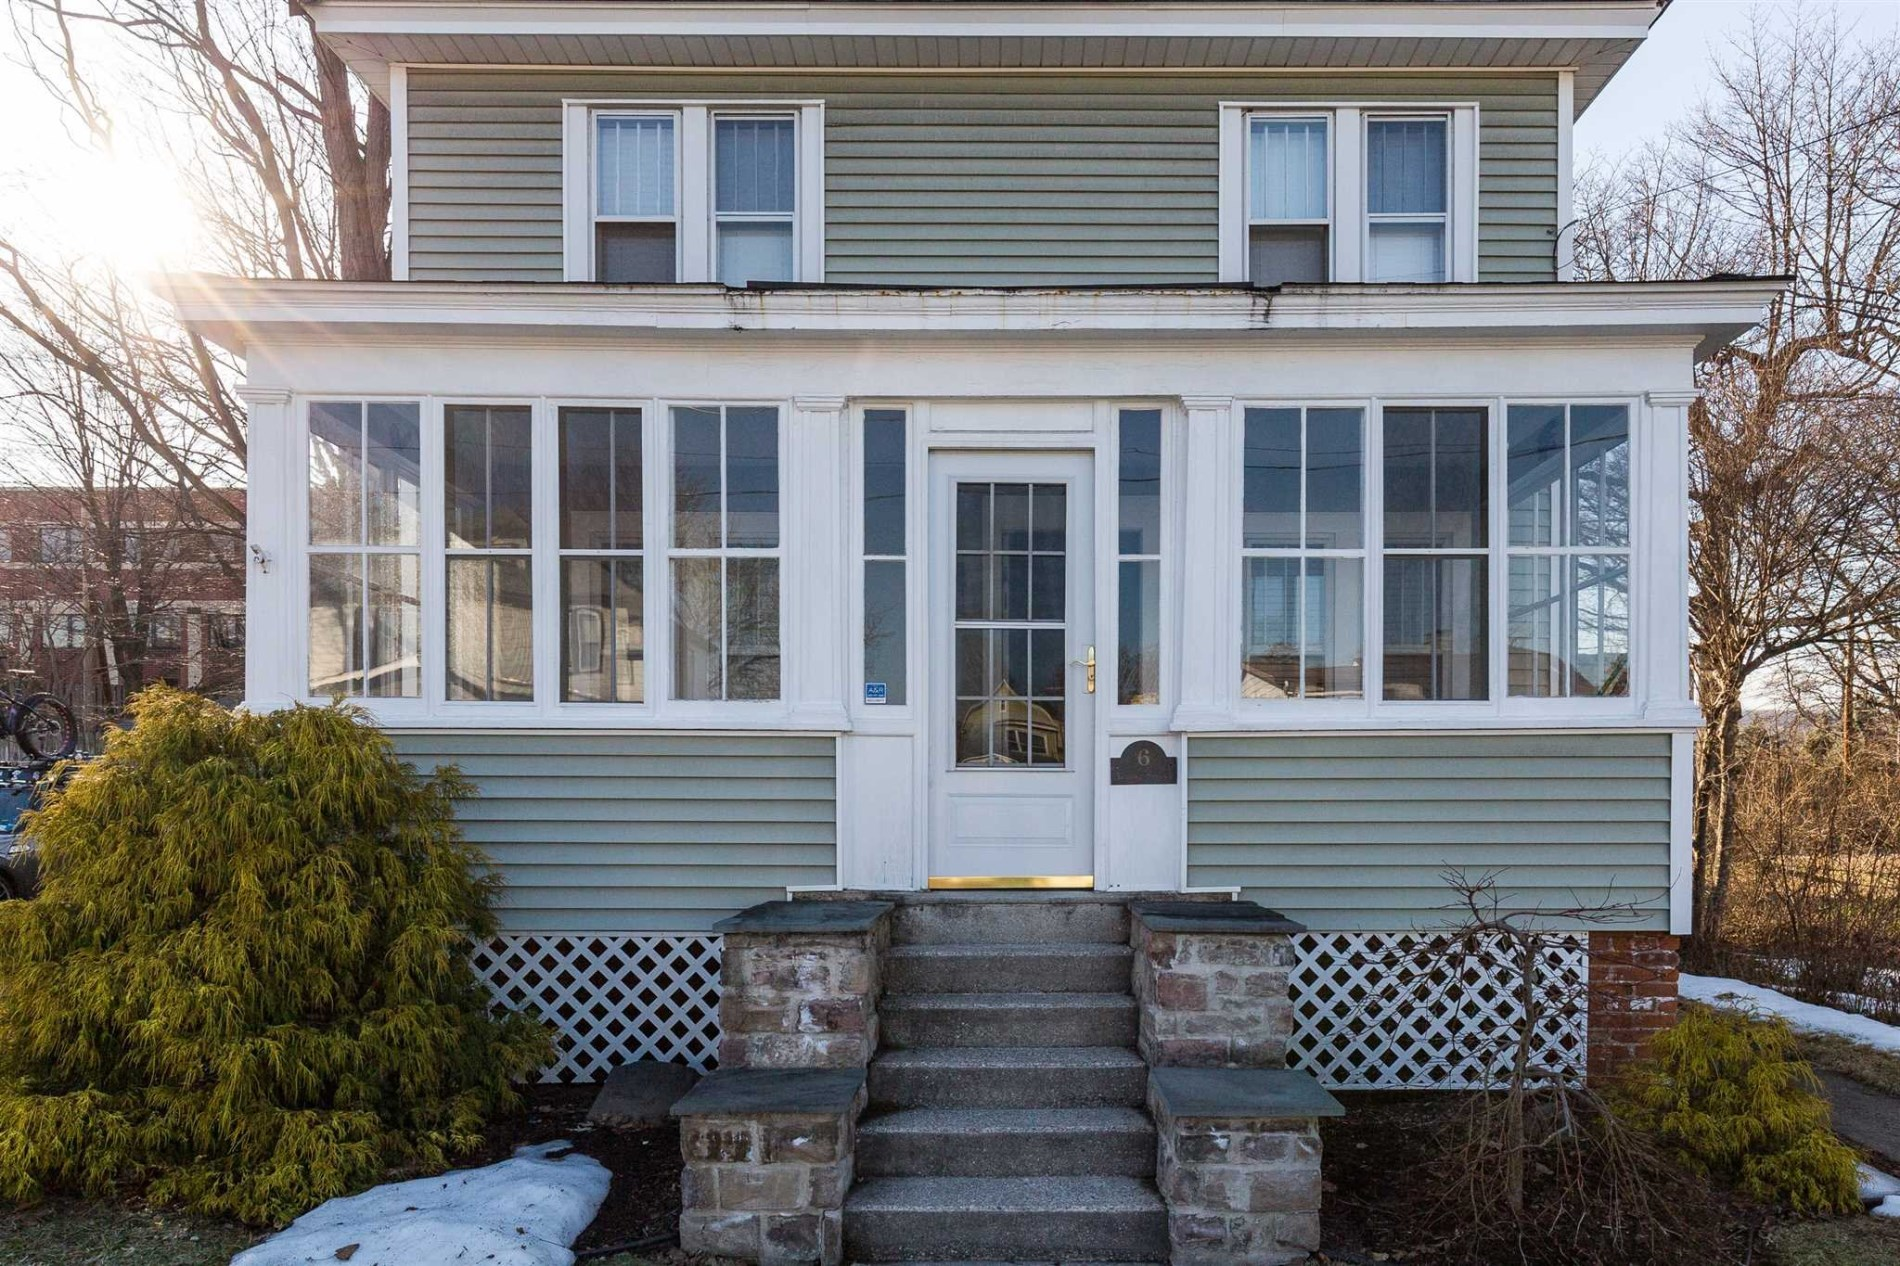 Got A Pet? This Three Bedroom Home In Poughkeepsie Has A Fenced In Backyard  Thatu0027s Around A Quarter Acre In Size. Thereu0027s Also A Two Bay Garage In Case  You ...